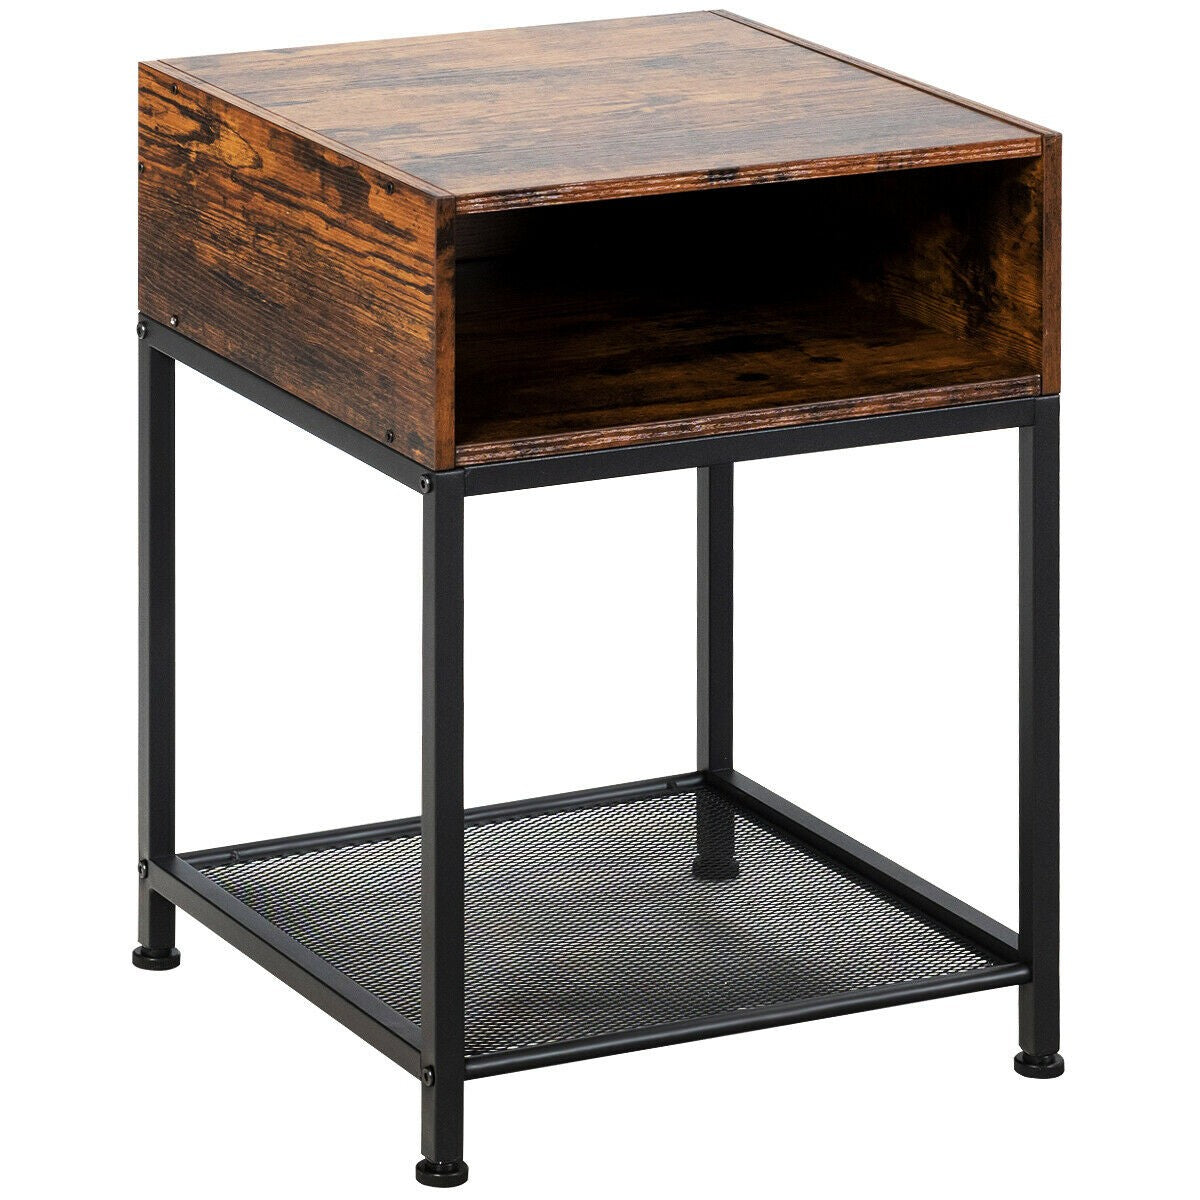 Industrial Style Side Table Or Nightstand-Side Table-The Modern Home Shop